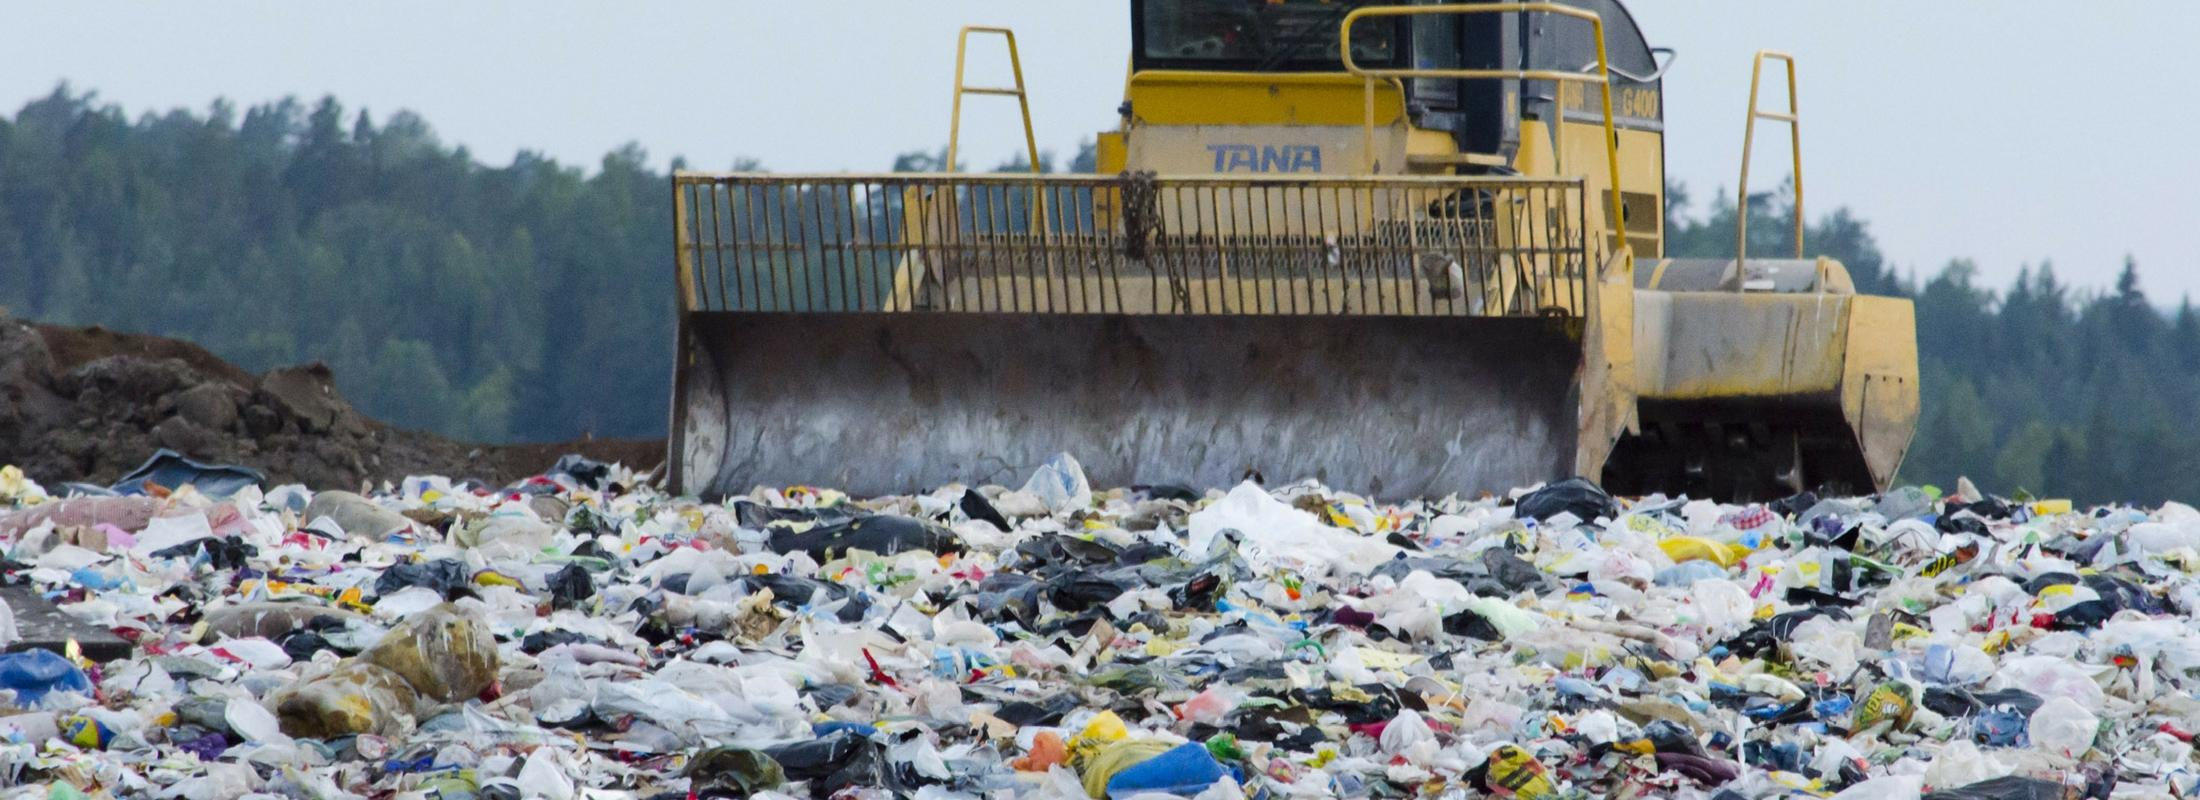 A bulldozer at a landfill pushing around trash